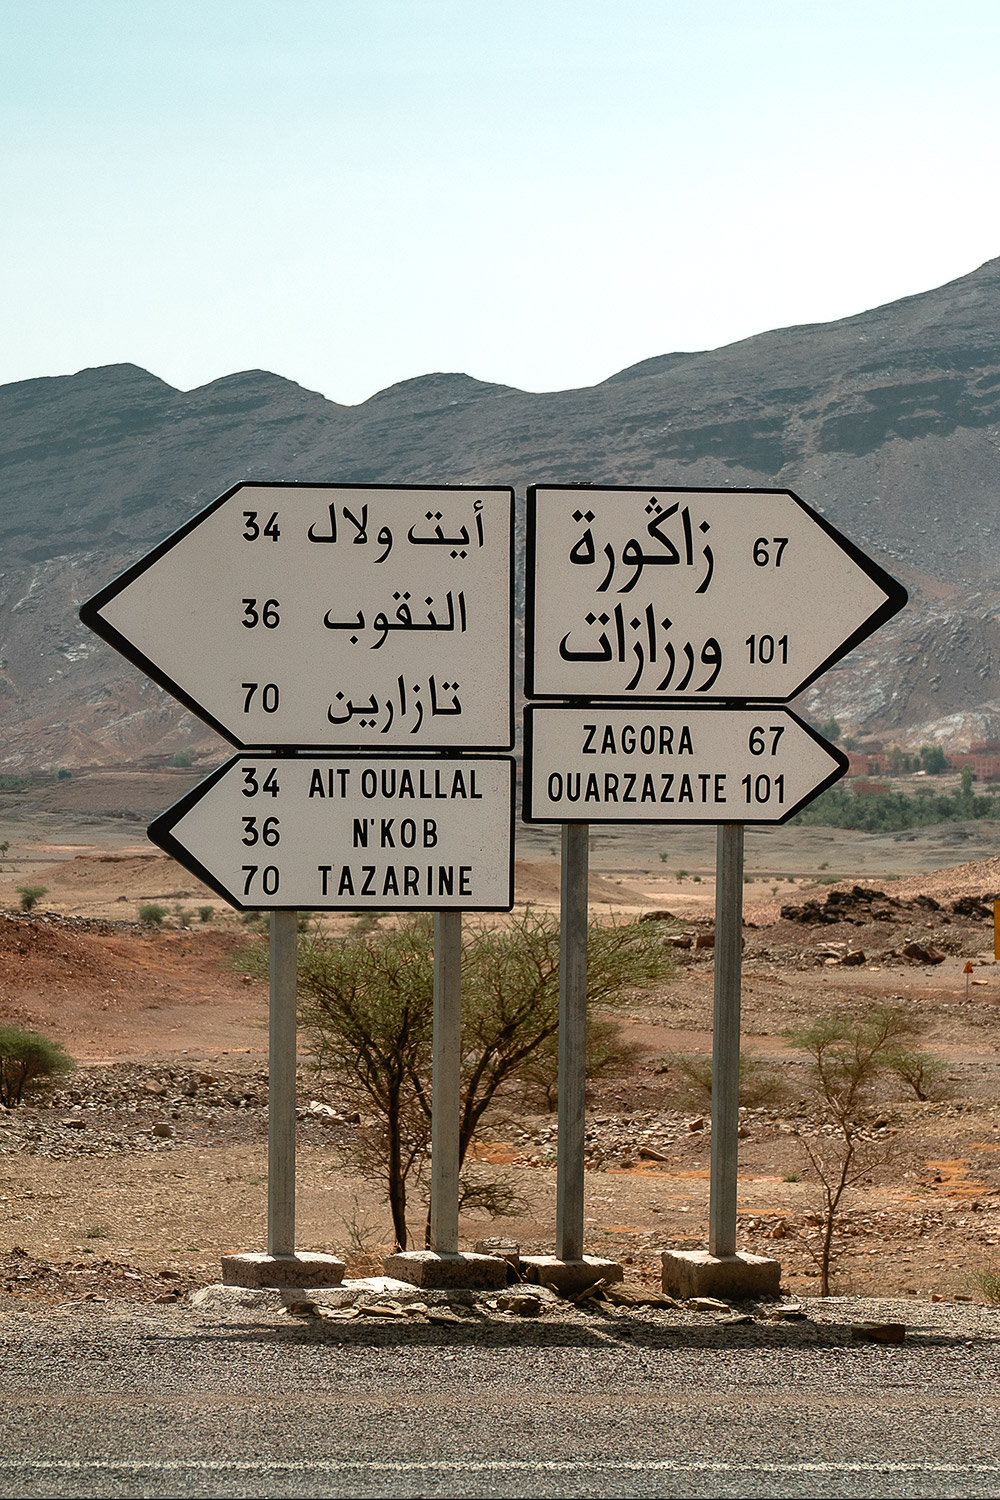 Road signs in Morocco